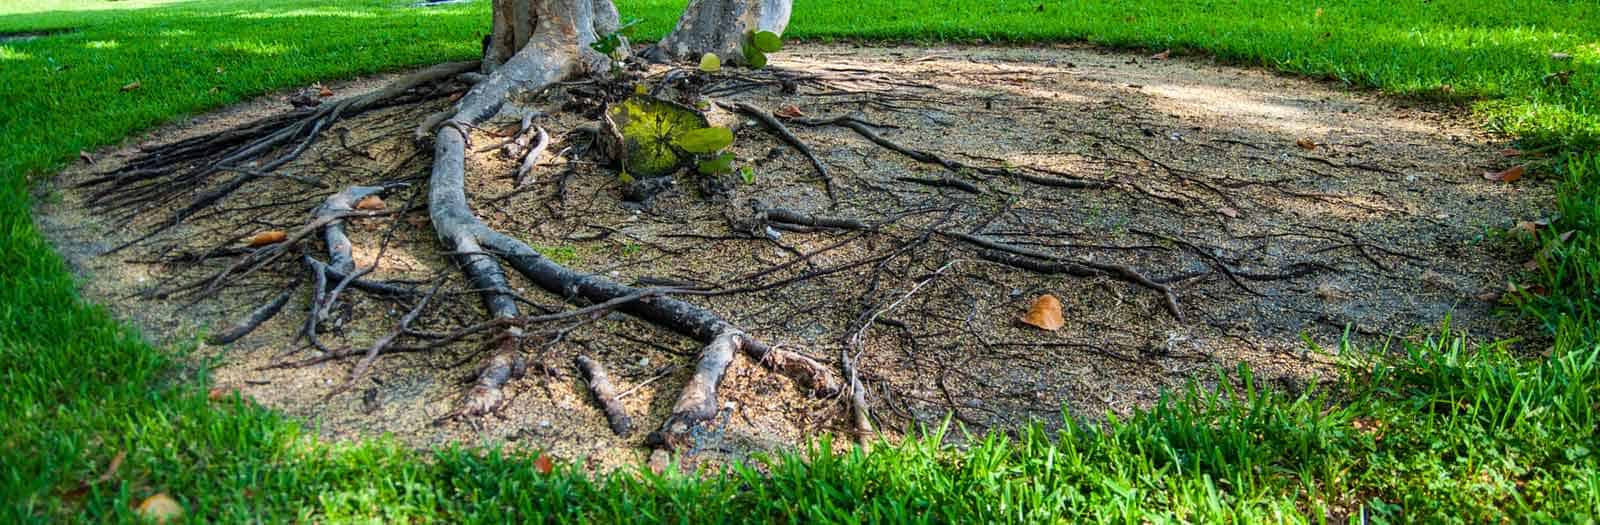 tree roots with root rot